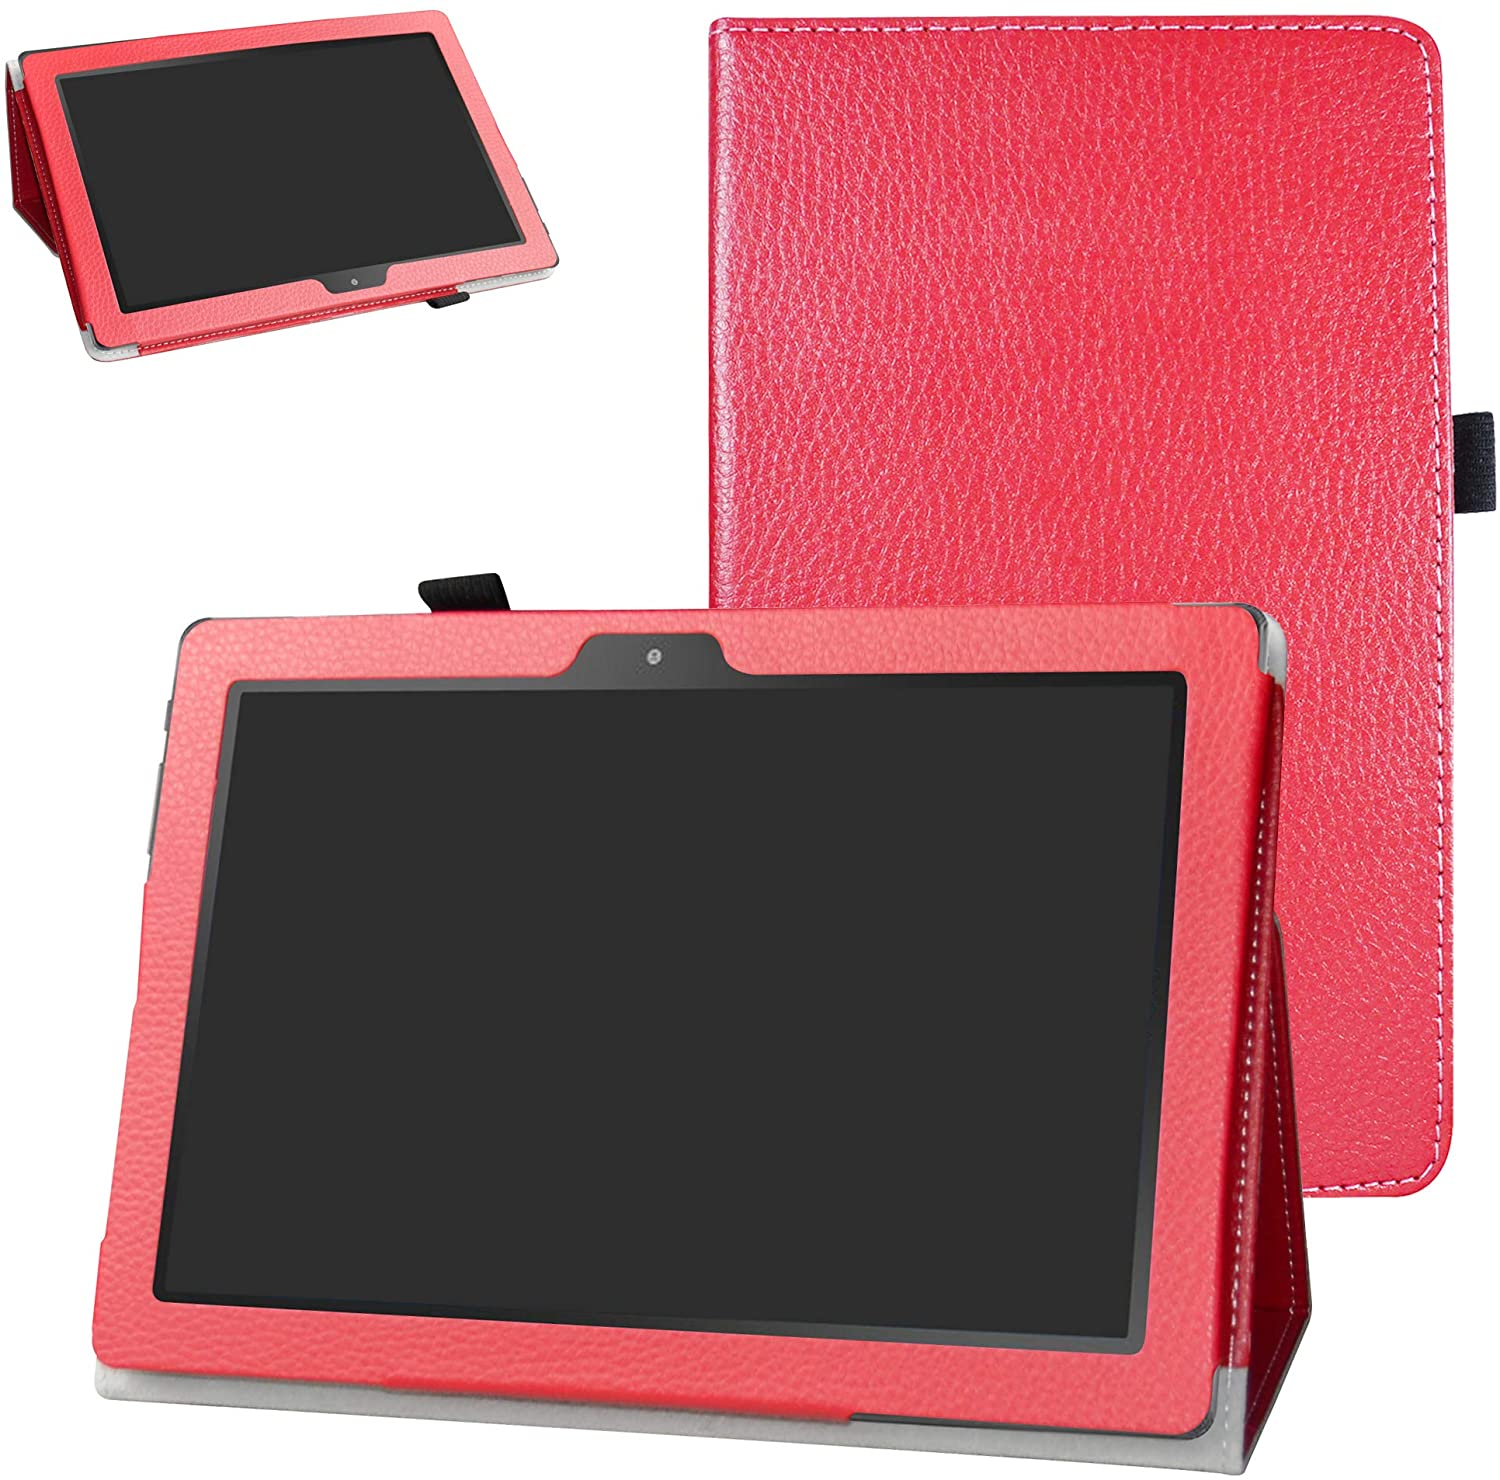 Digiland DL1023 10.1 Tablet Case,Digiland DL1016 10.1 Tablet Case,Bige PU Leather Folio 2-Folding Stand Cover for 10.1